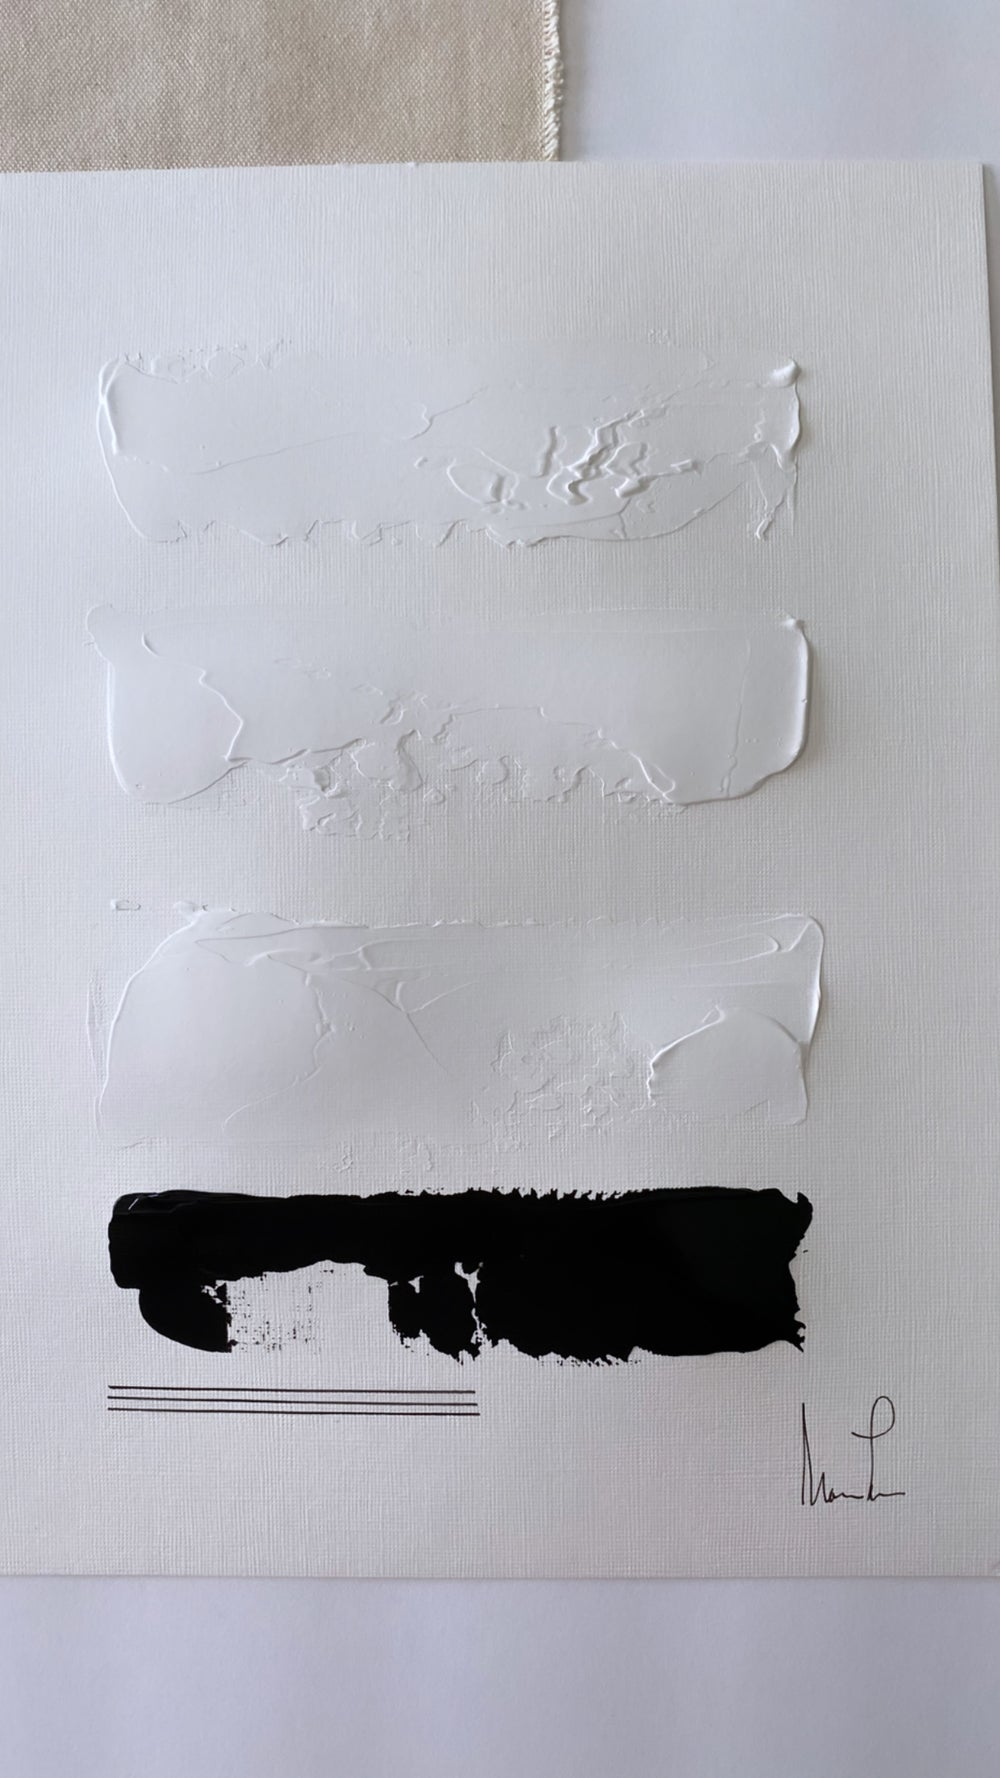 Image of Black & White Edition on Acrylic Paper (5)